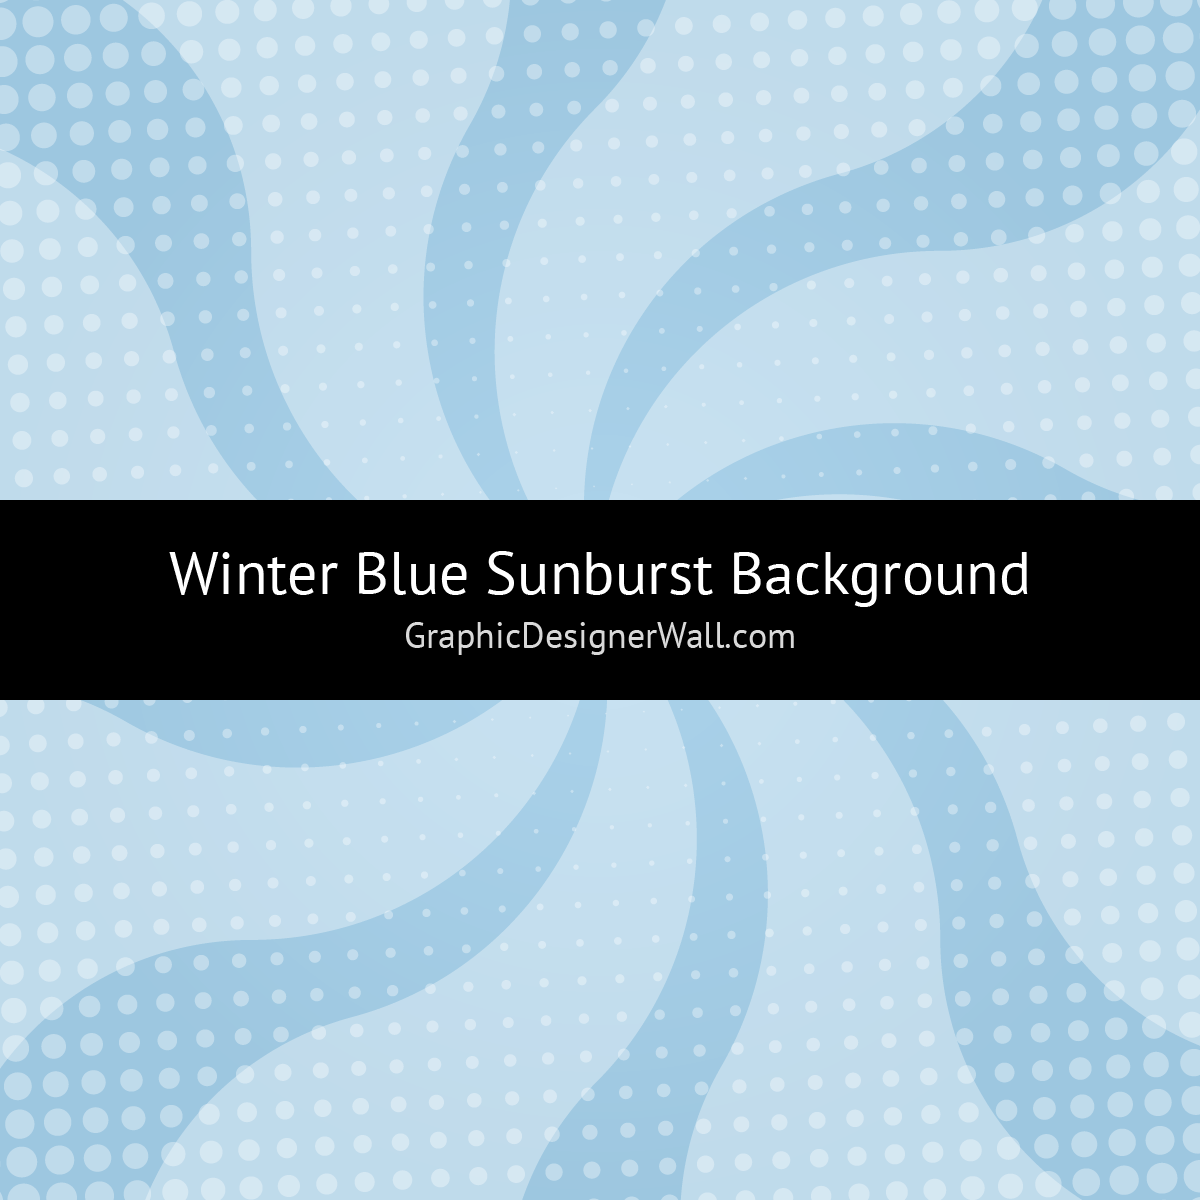 Winter Blue Sunburst Background